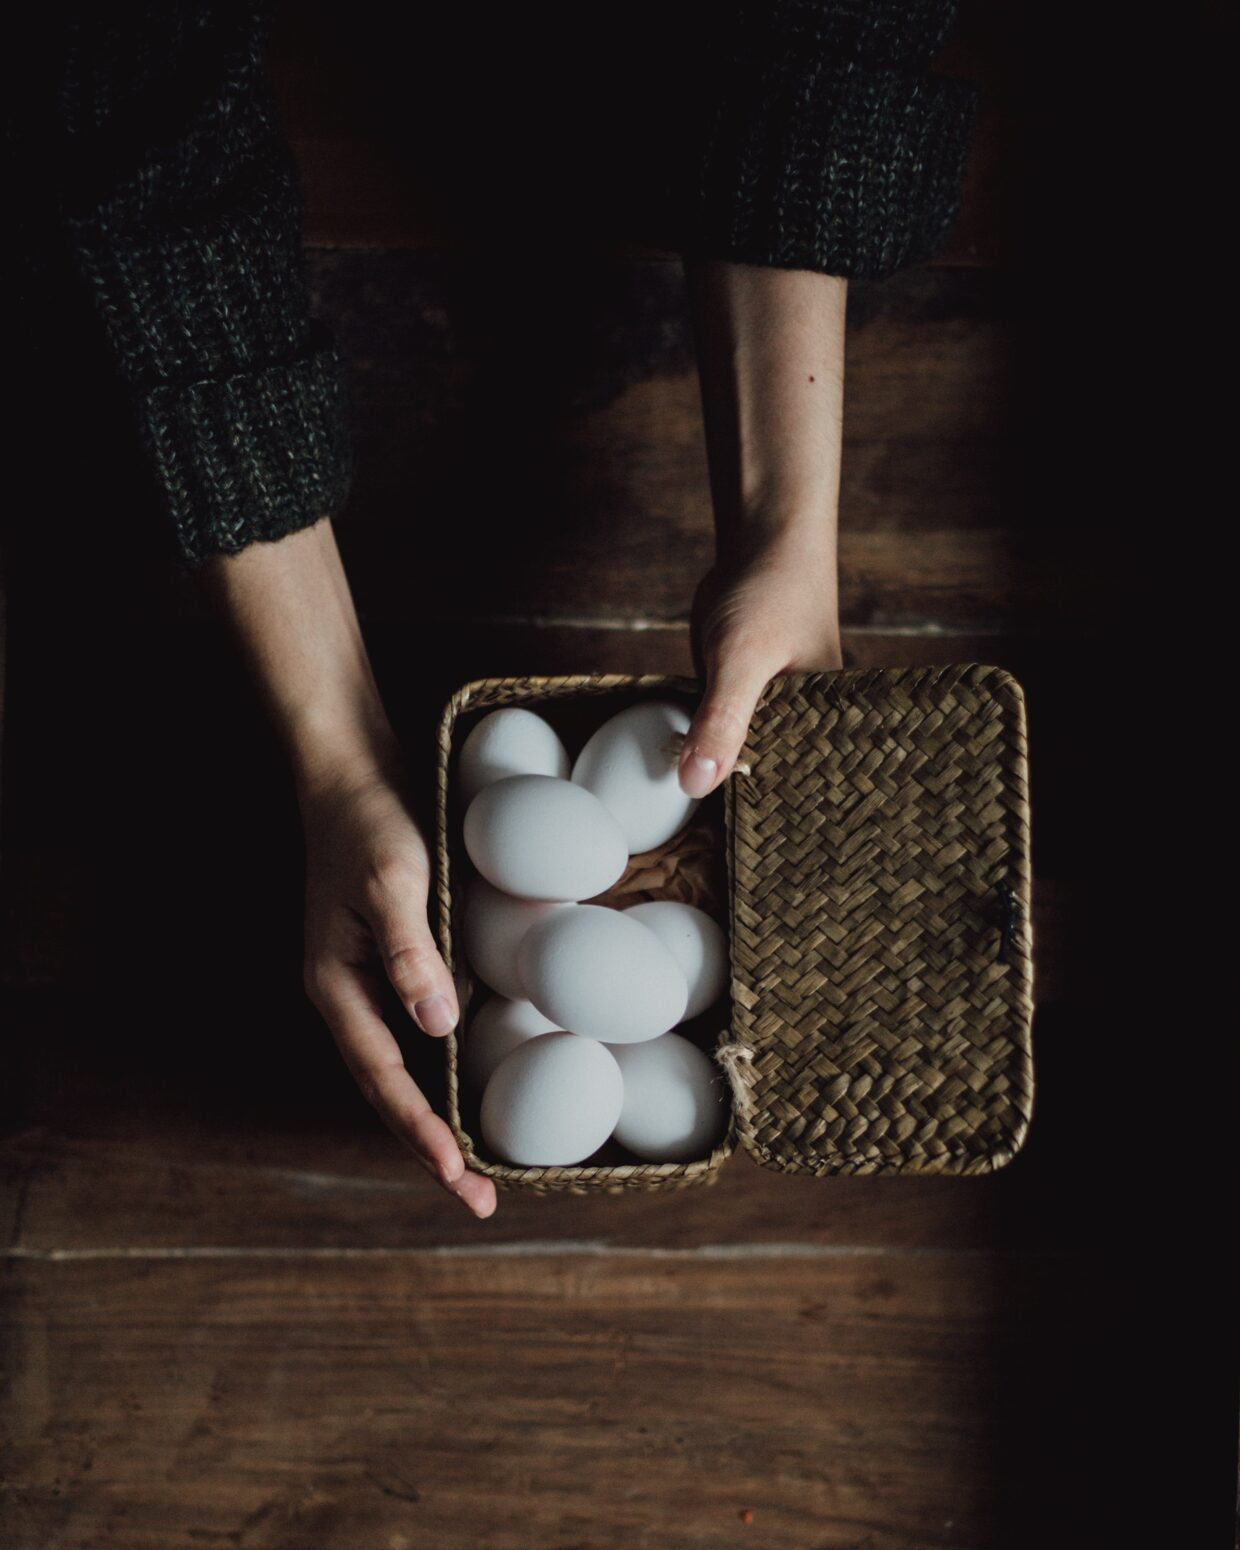 How to get really rich - put all eggs in one basket